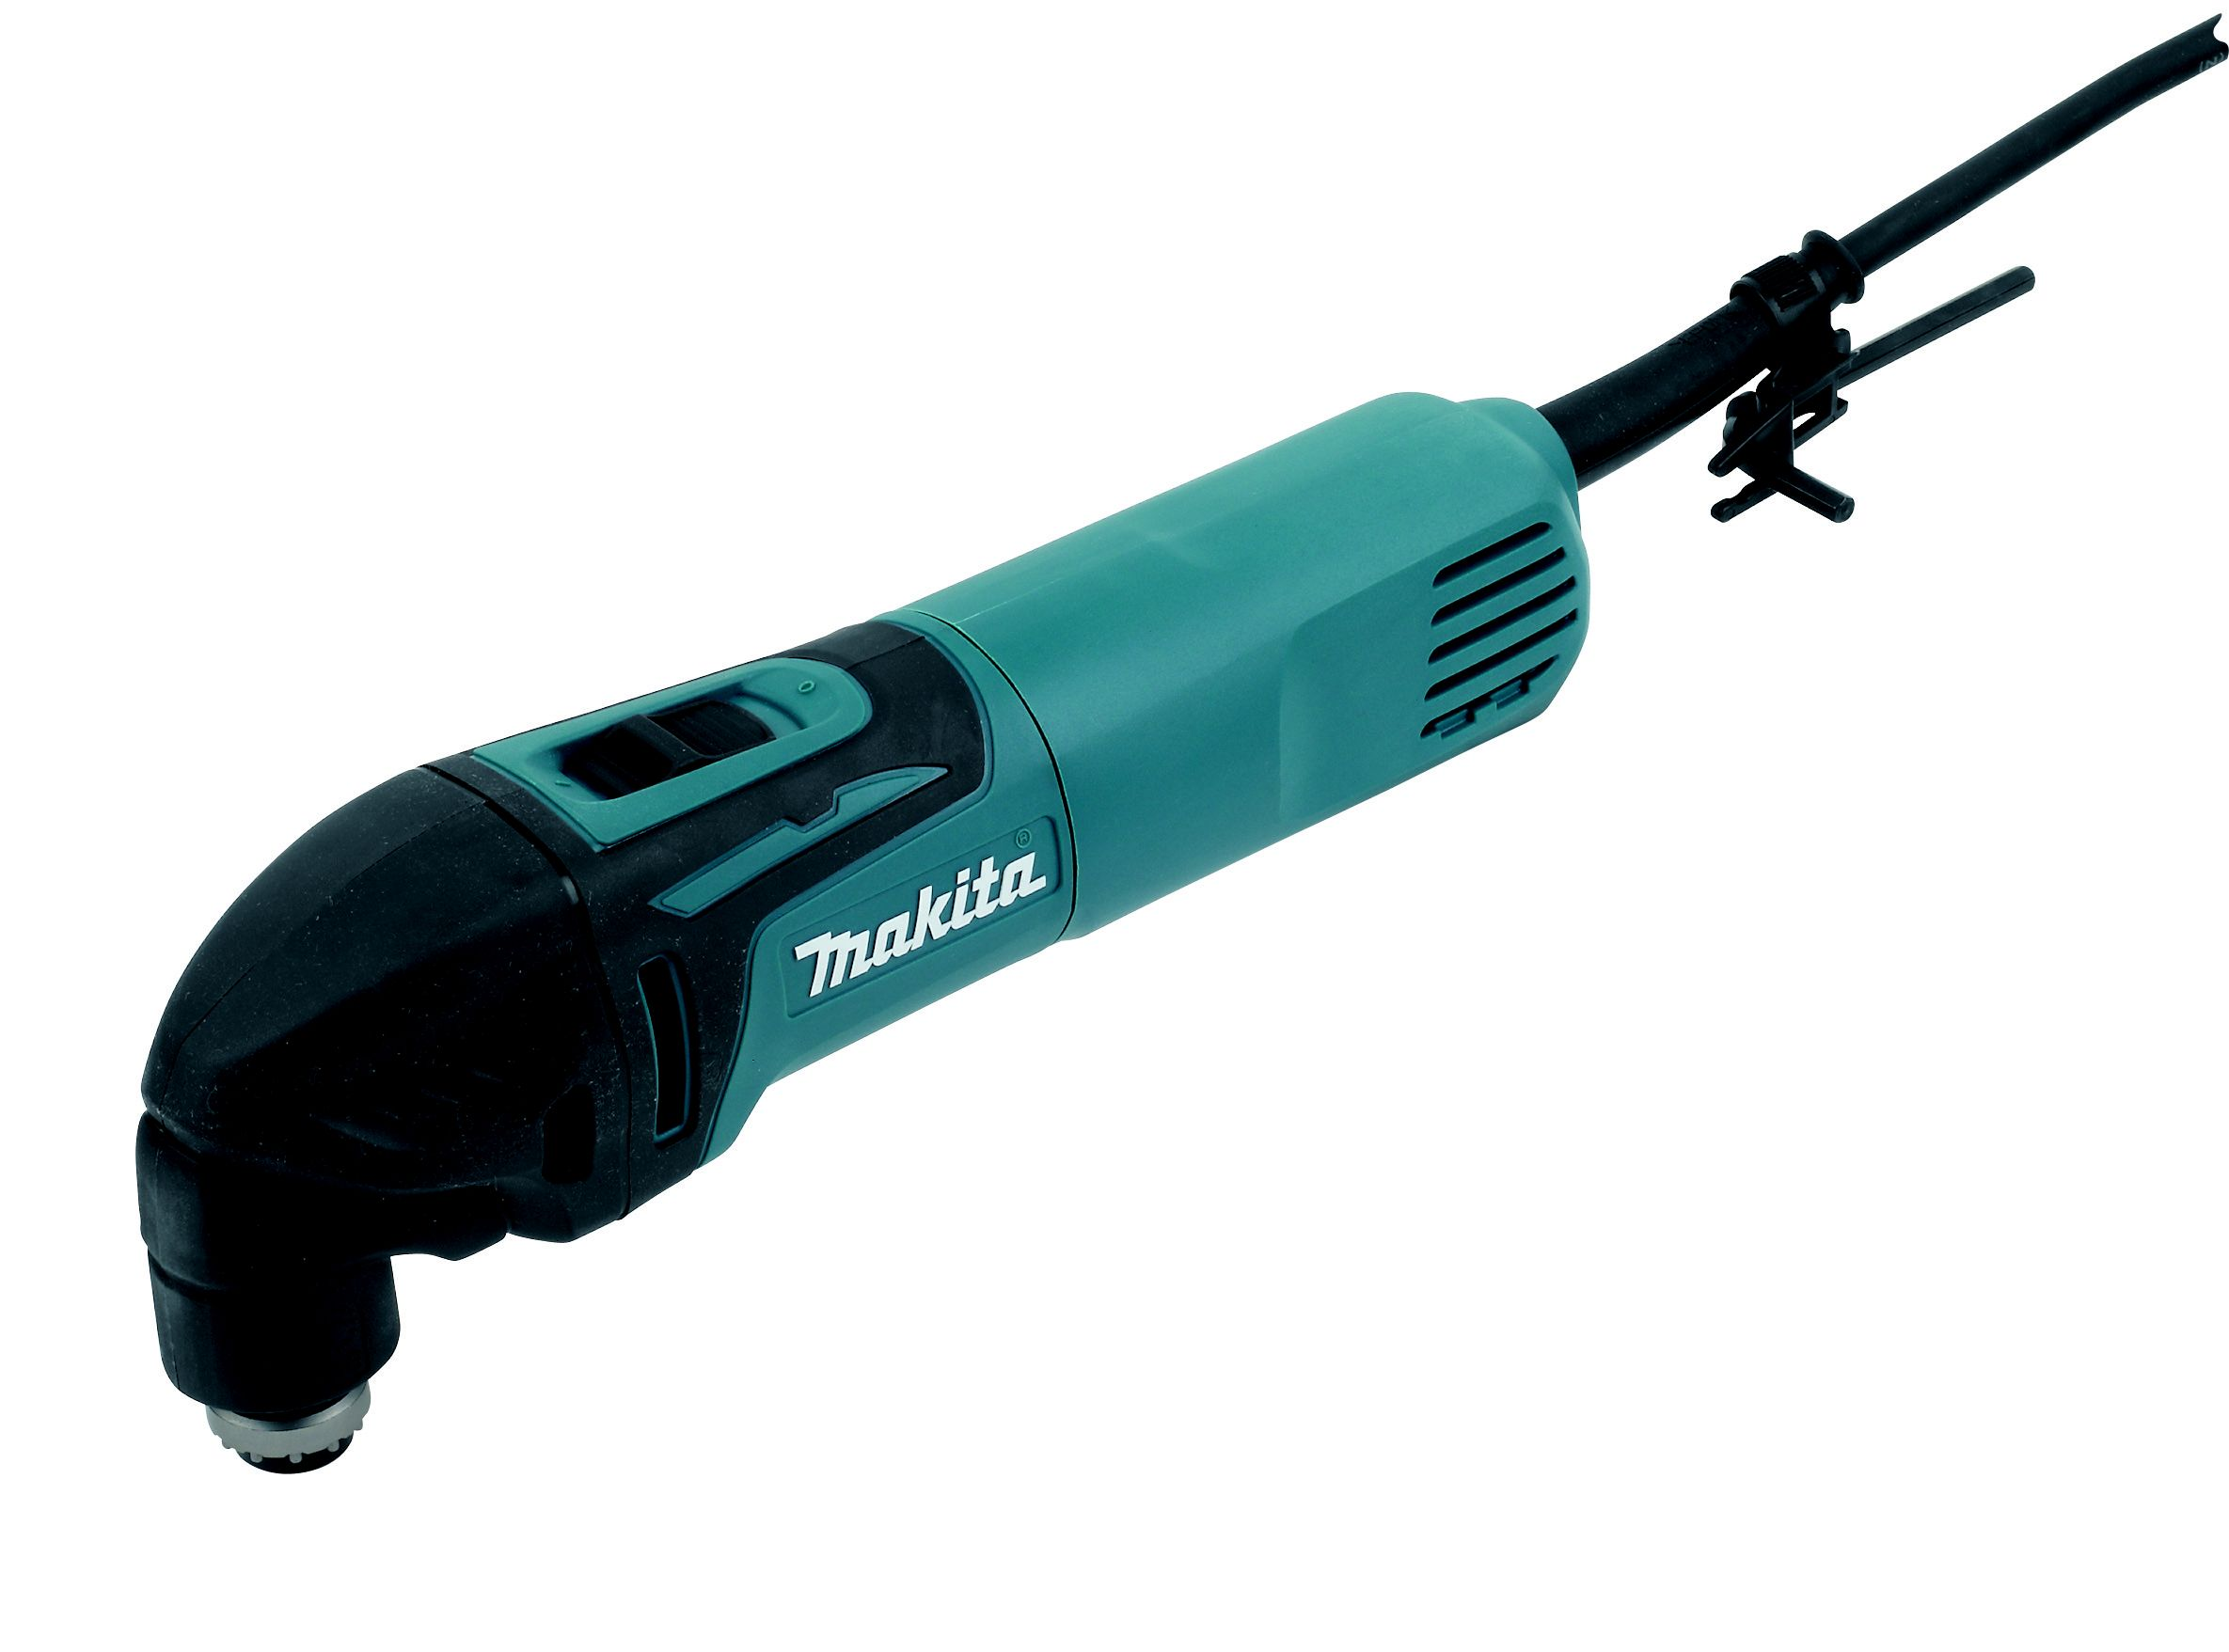 Makita 320w 240v Multi Tool Tm3000c 2 Departments